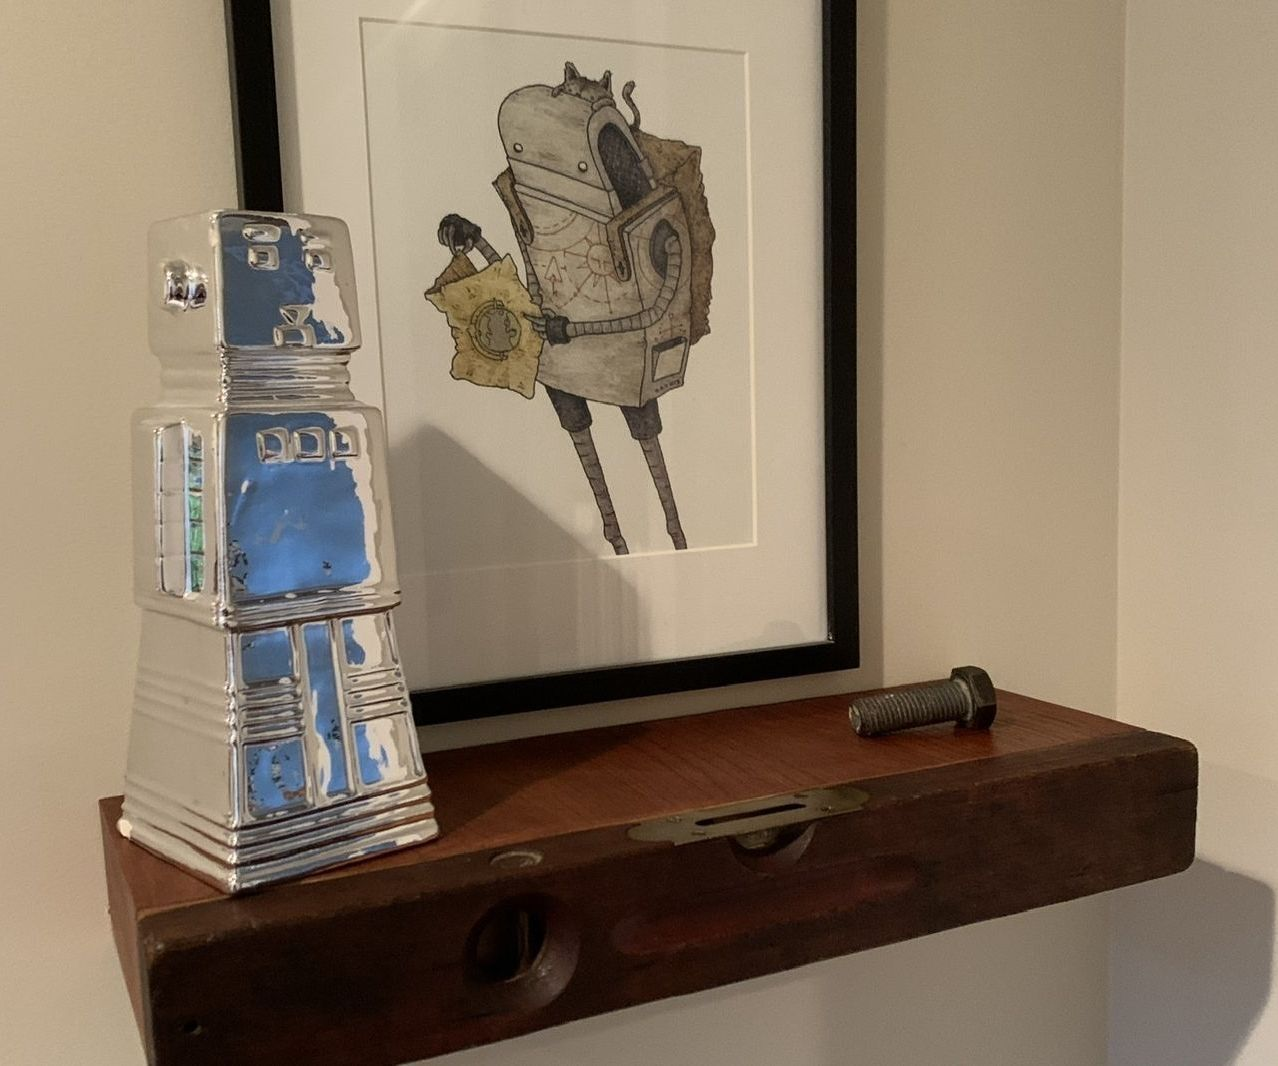 A Level Shelf - an Easy-to-Make Floating Shelf Made From a Vintage Level